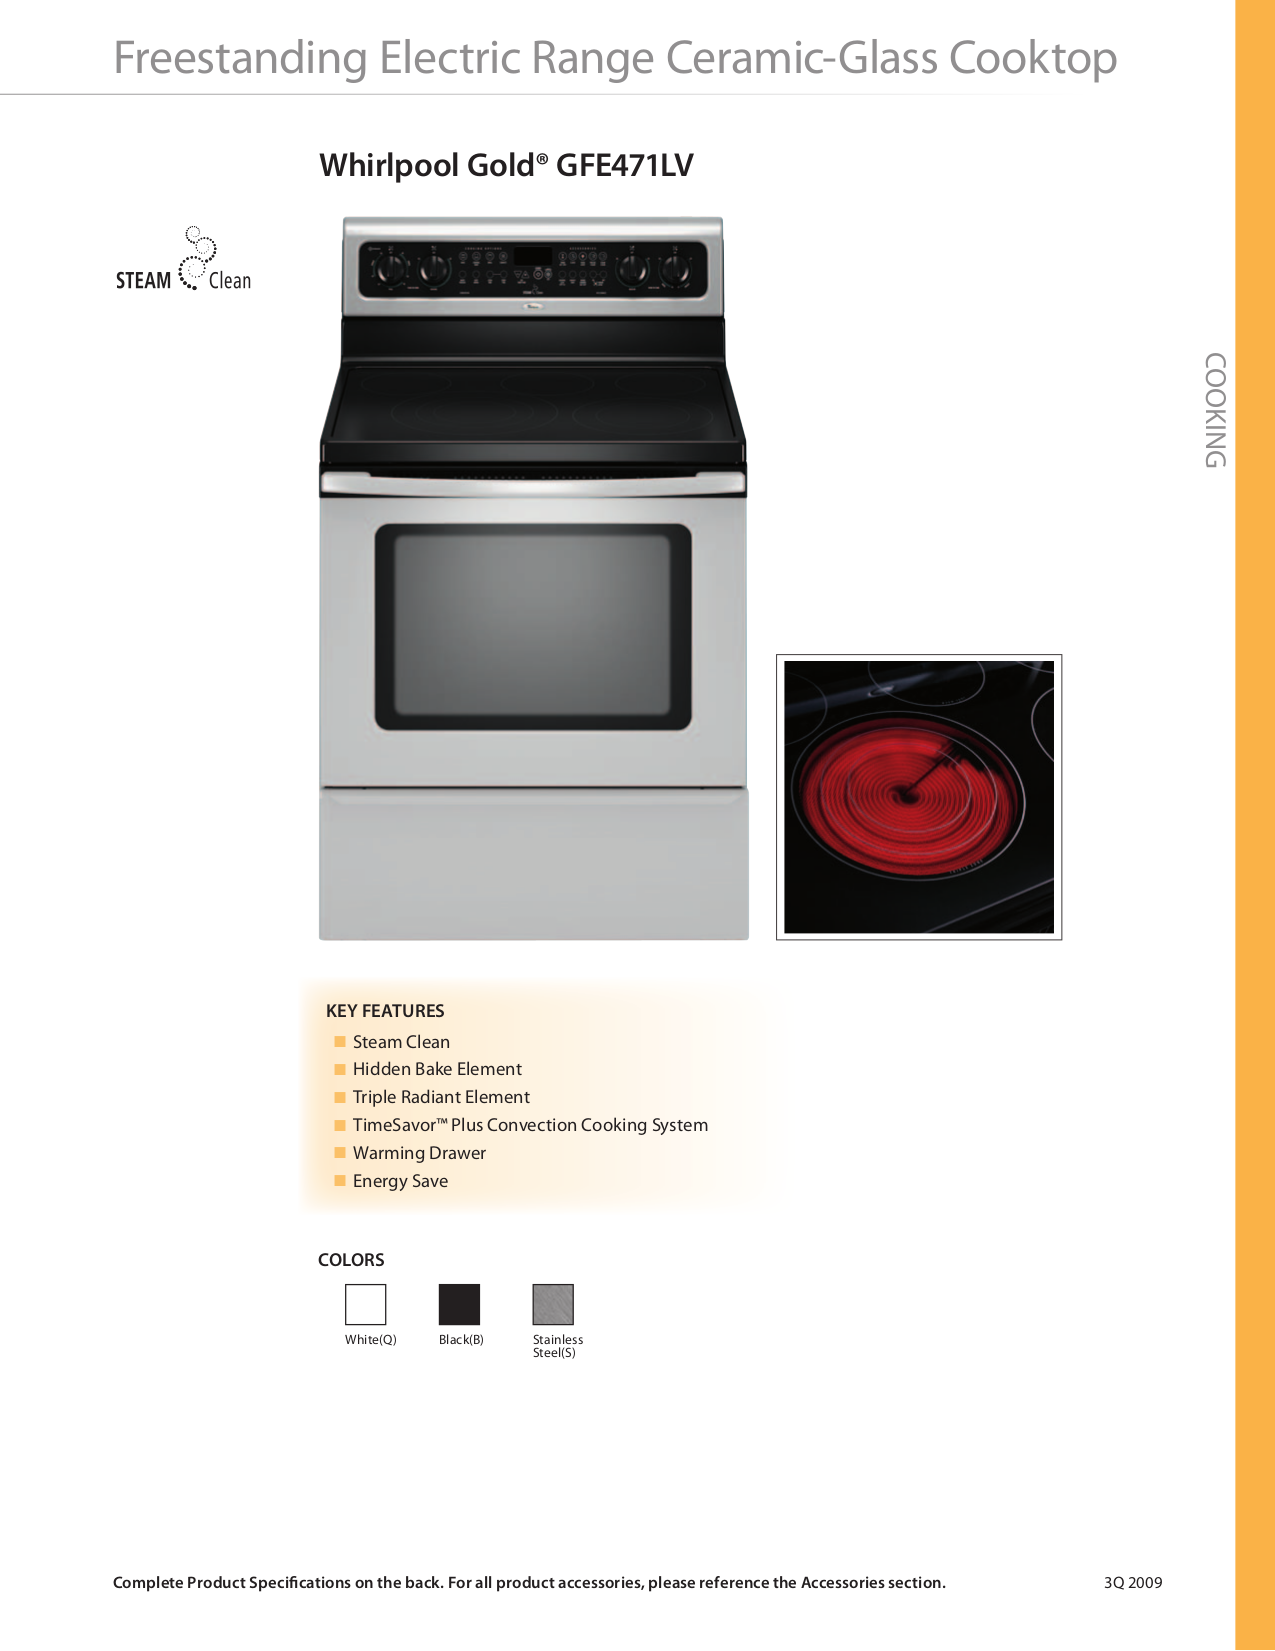 whirlpool self cleaning stove manual shop whirlpool freestanding 4 8 rh thecourthouse itag pw Whirlpool Refrigerator Wiring Layout Whirlpool Refrigerator Wiring Layout